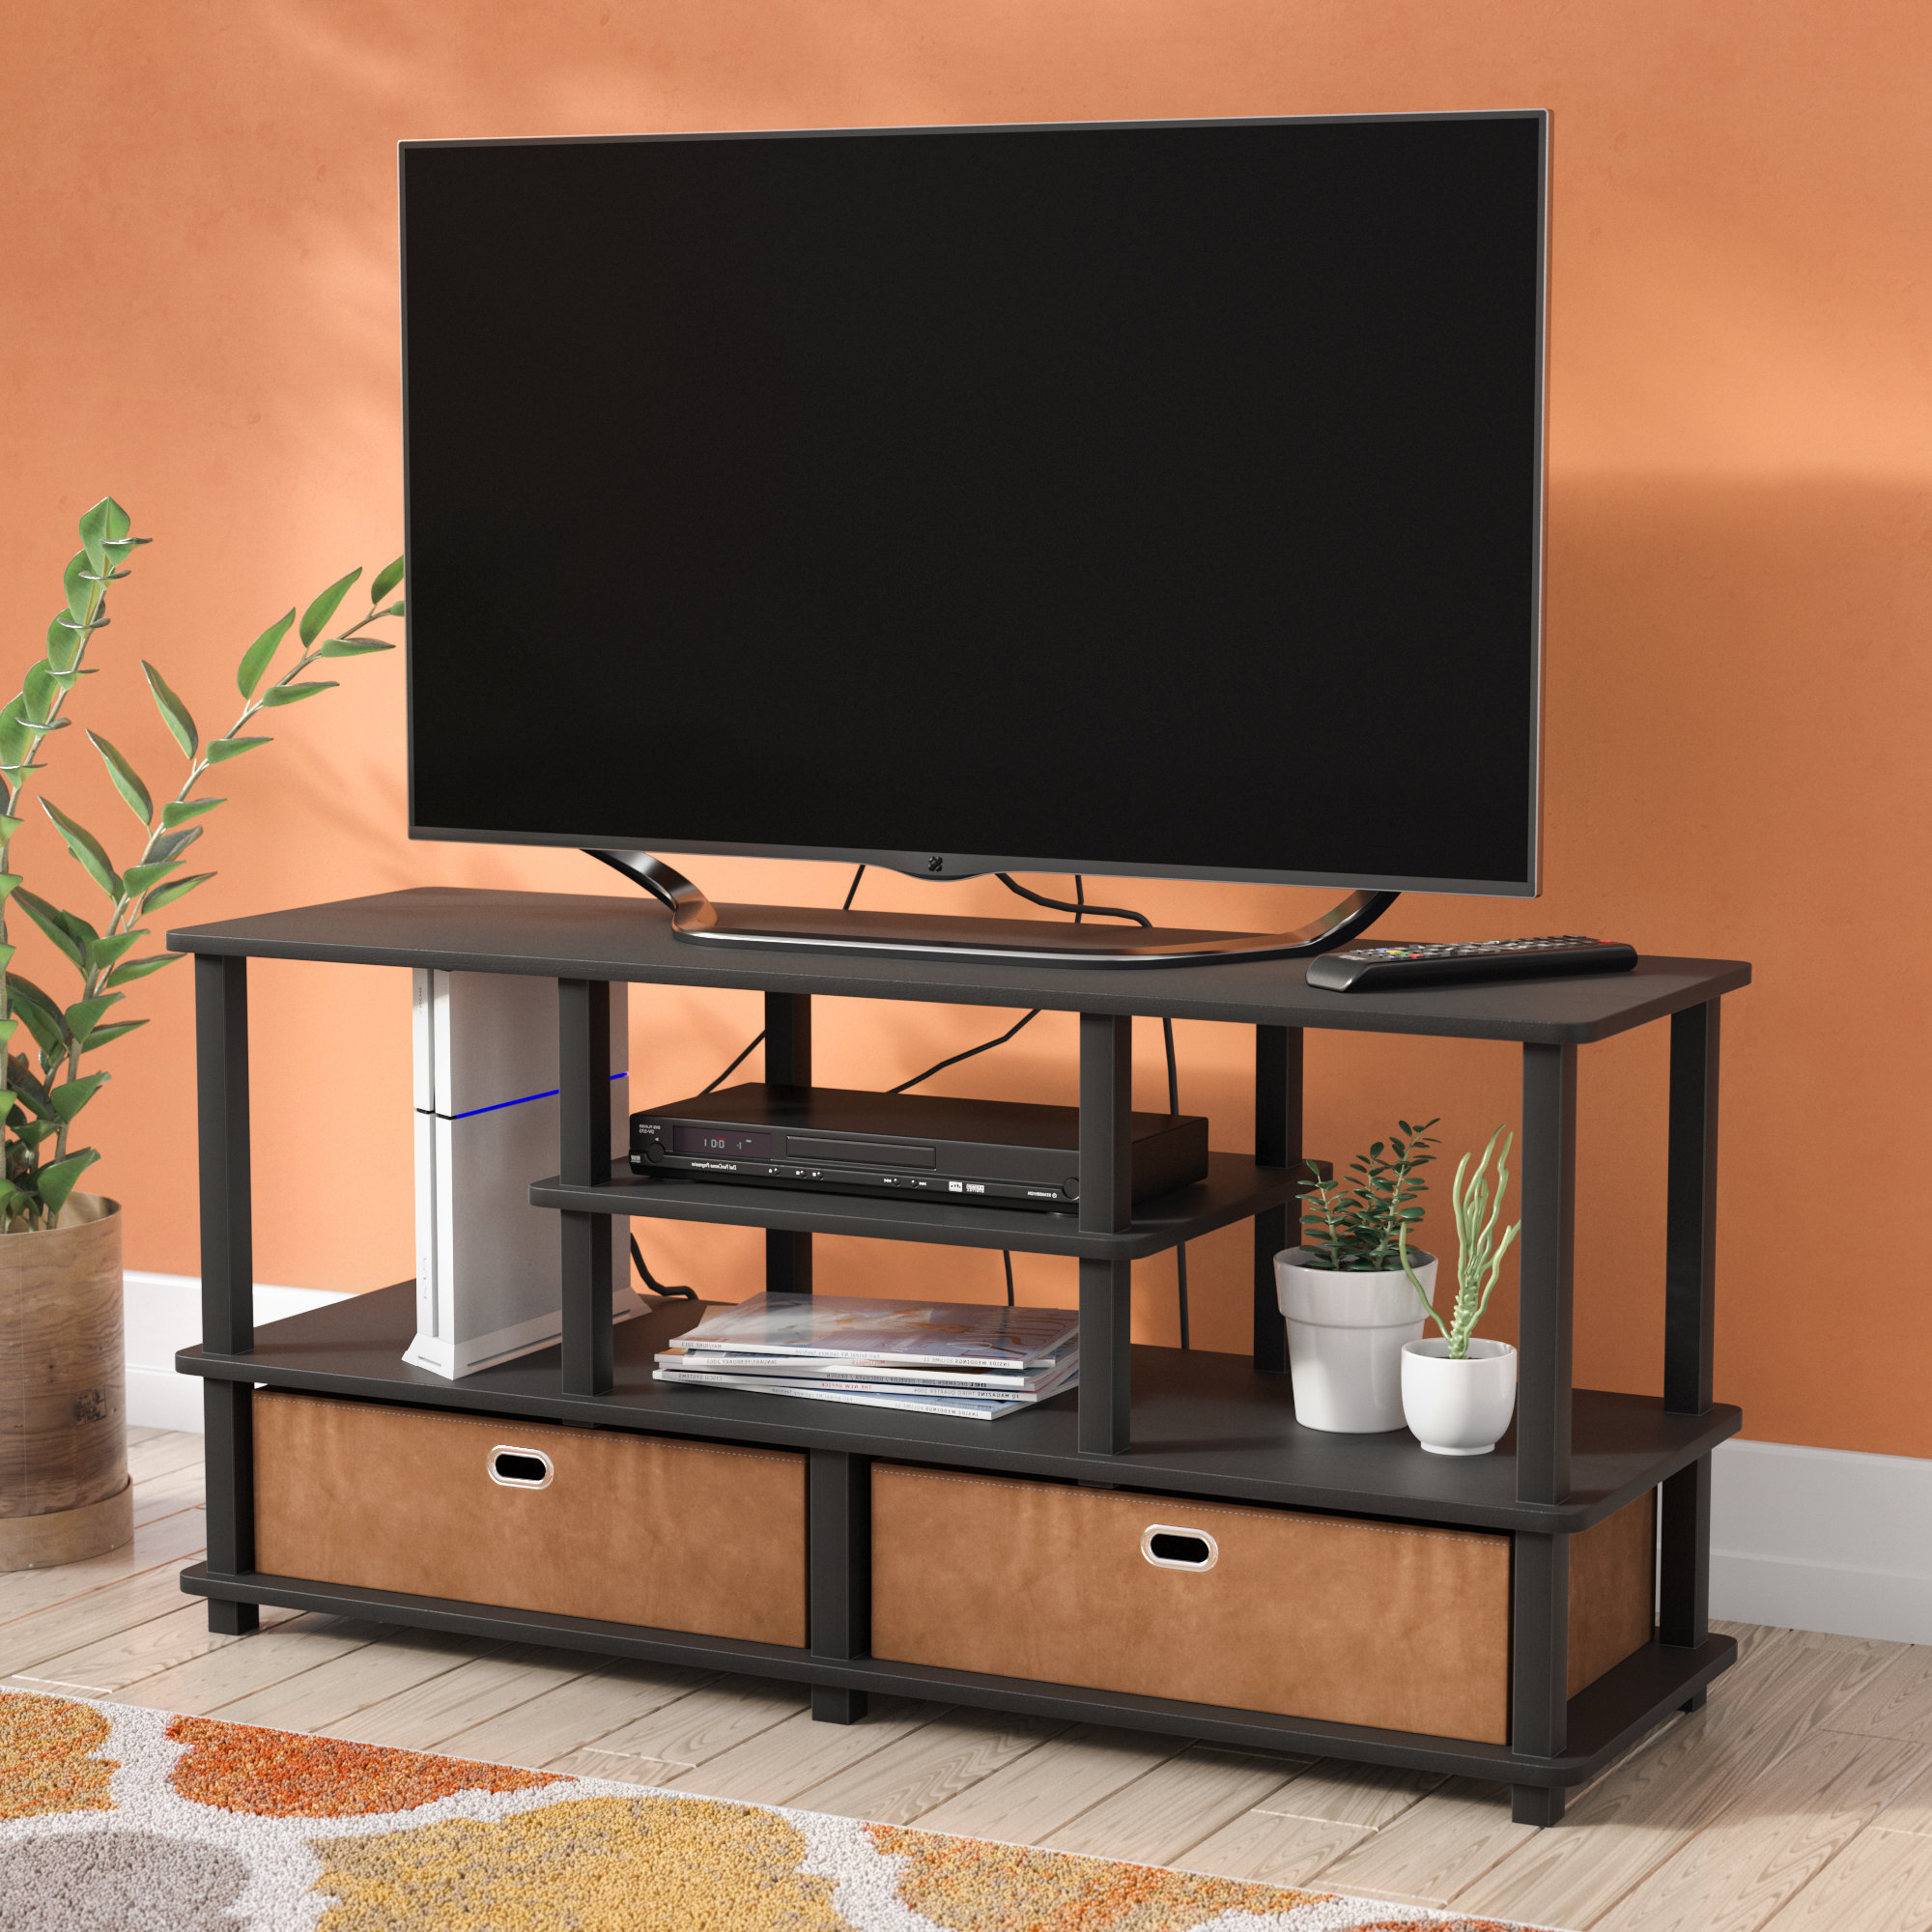 "Zipcode Design Crow Tv Stand For Tvs Up To 50"" & Reviews 